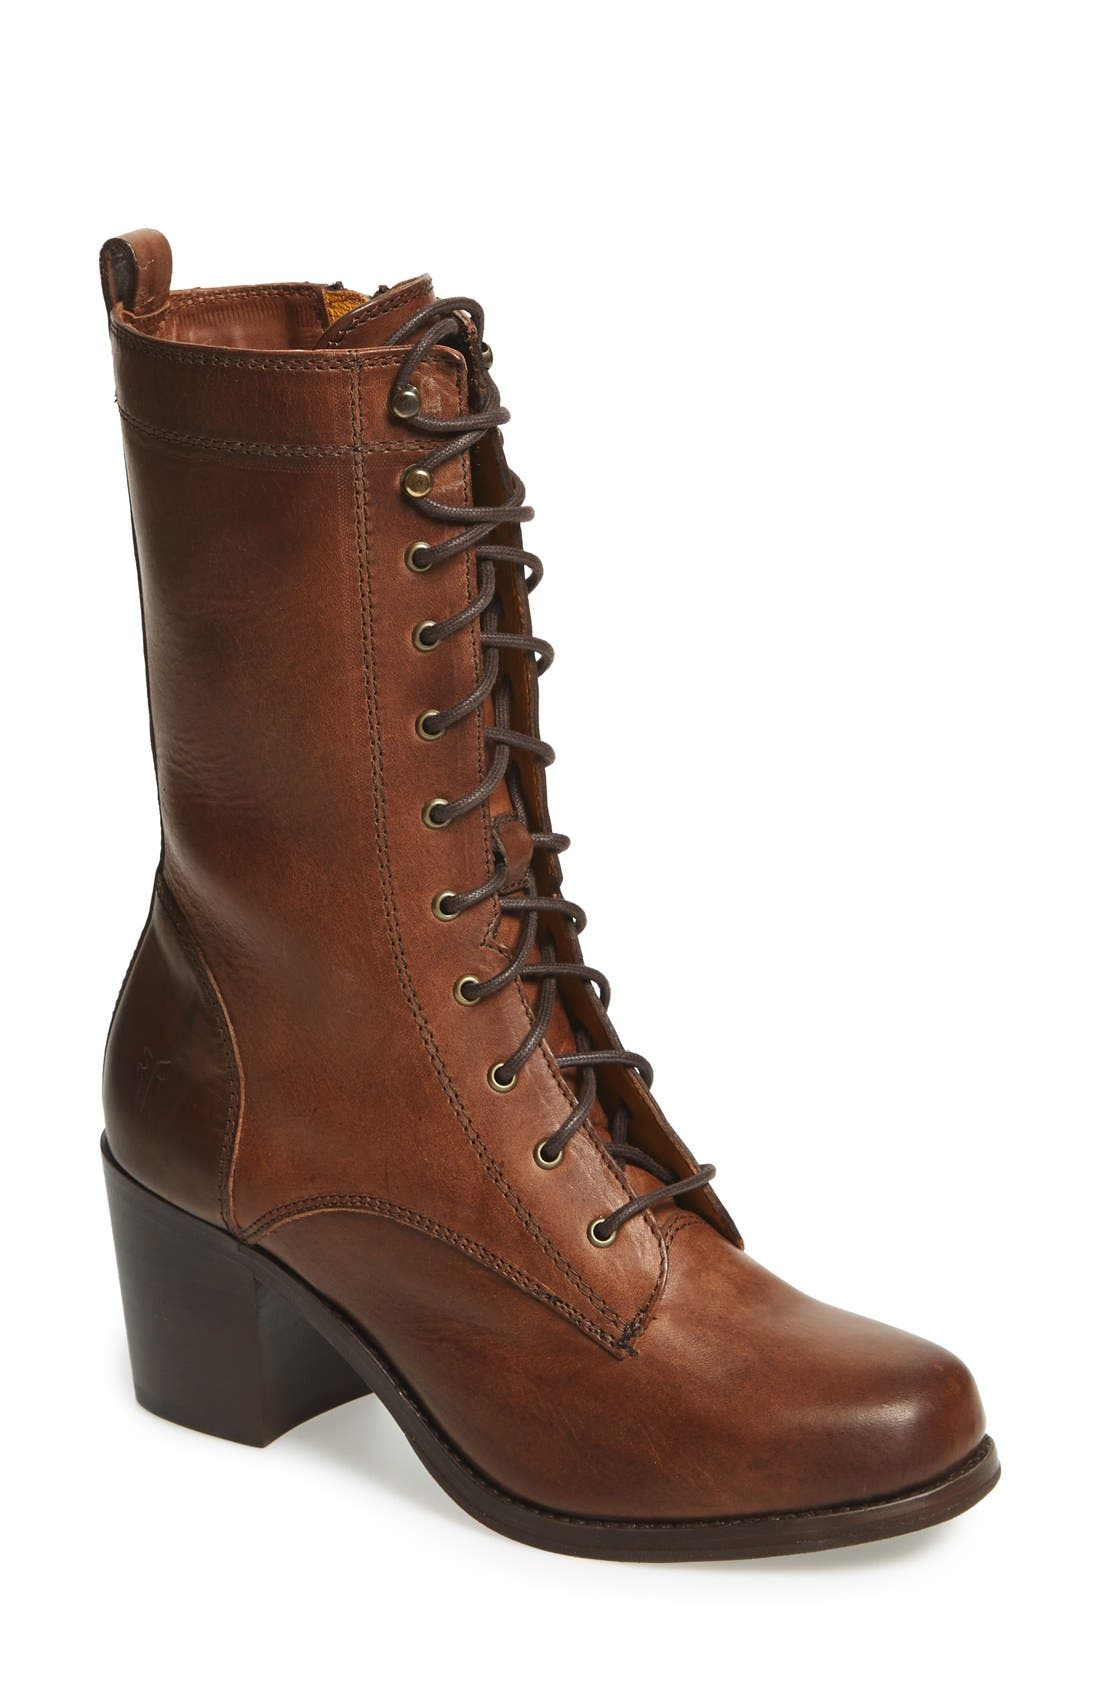 Main Image - Frye 'Kendall' Lace-Up Boot (Women)